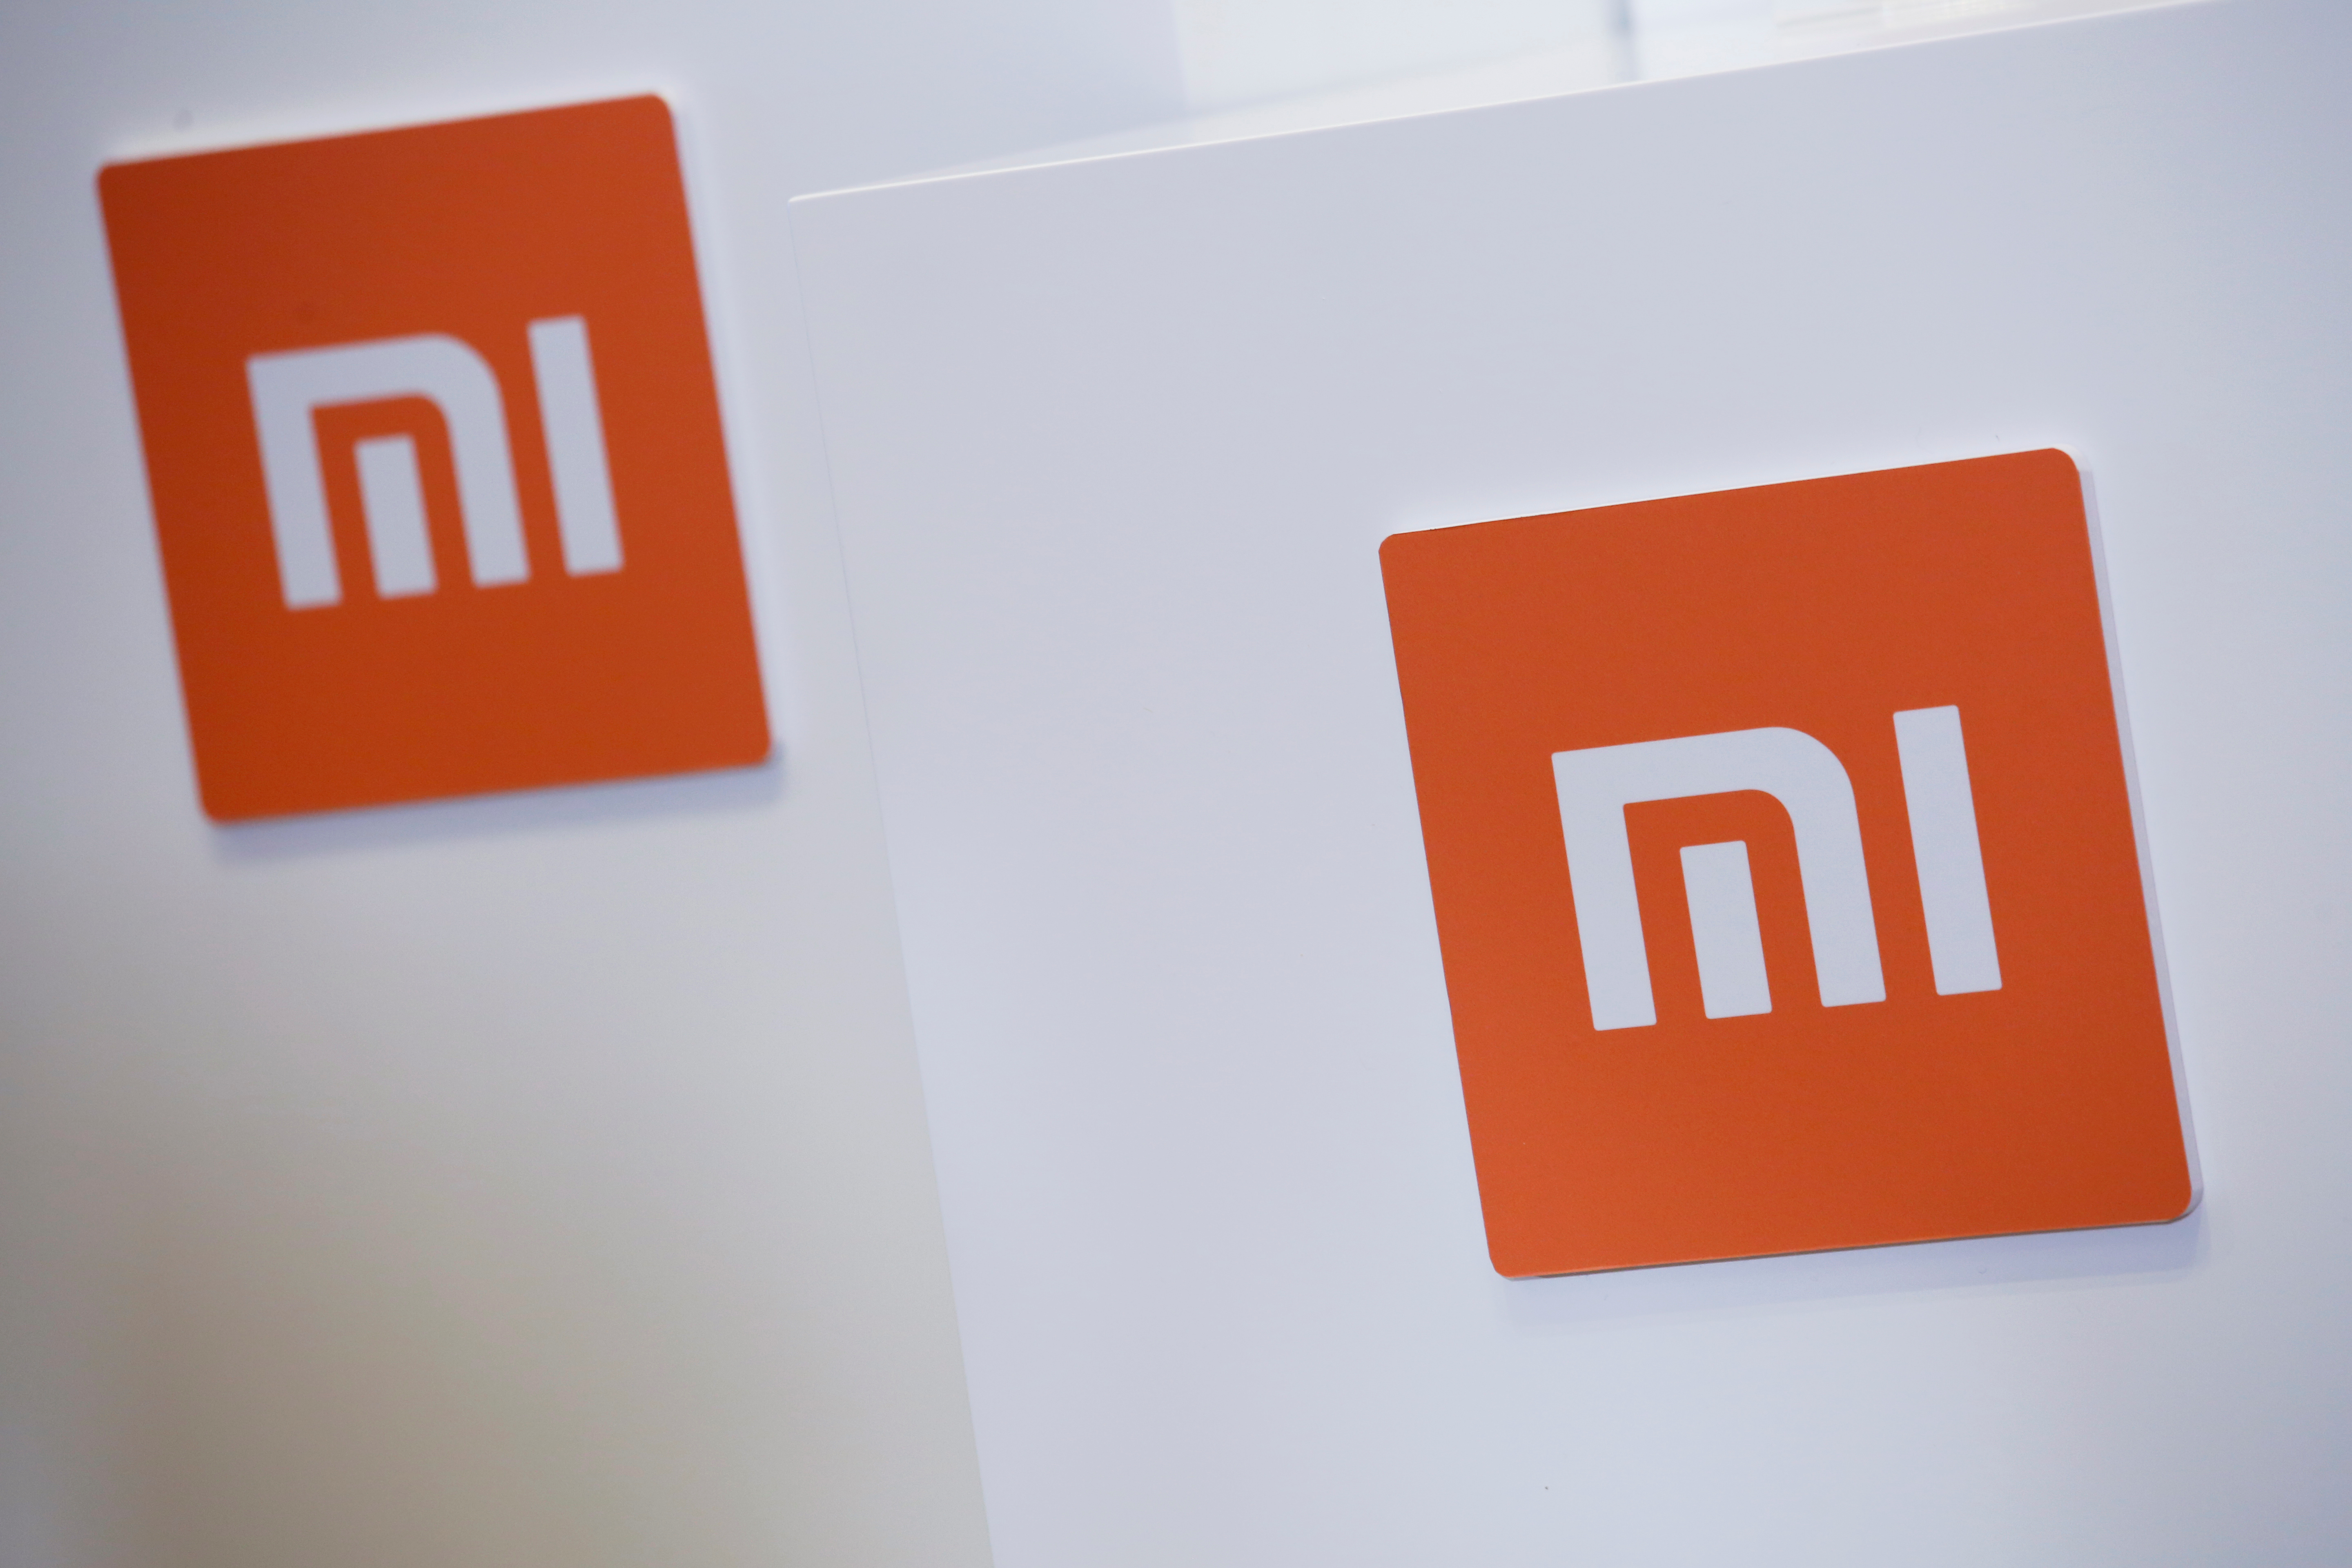 Xiaomi logos are seen during a news conference in Hong Kong, China June 23, 2018. REUTERS/Bobby Yip